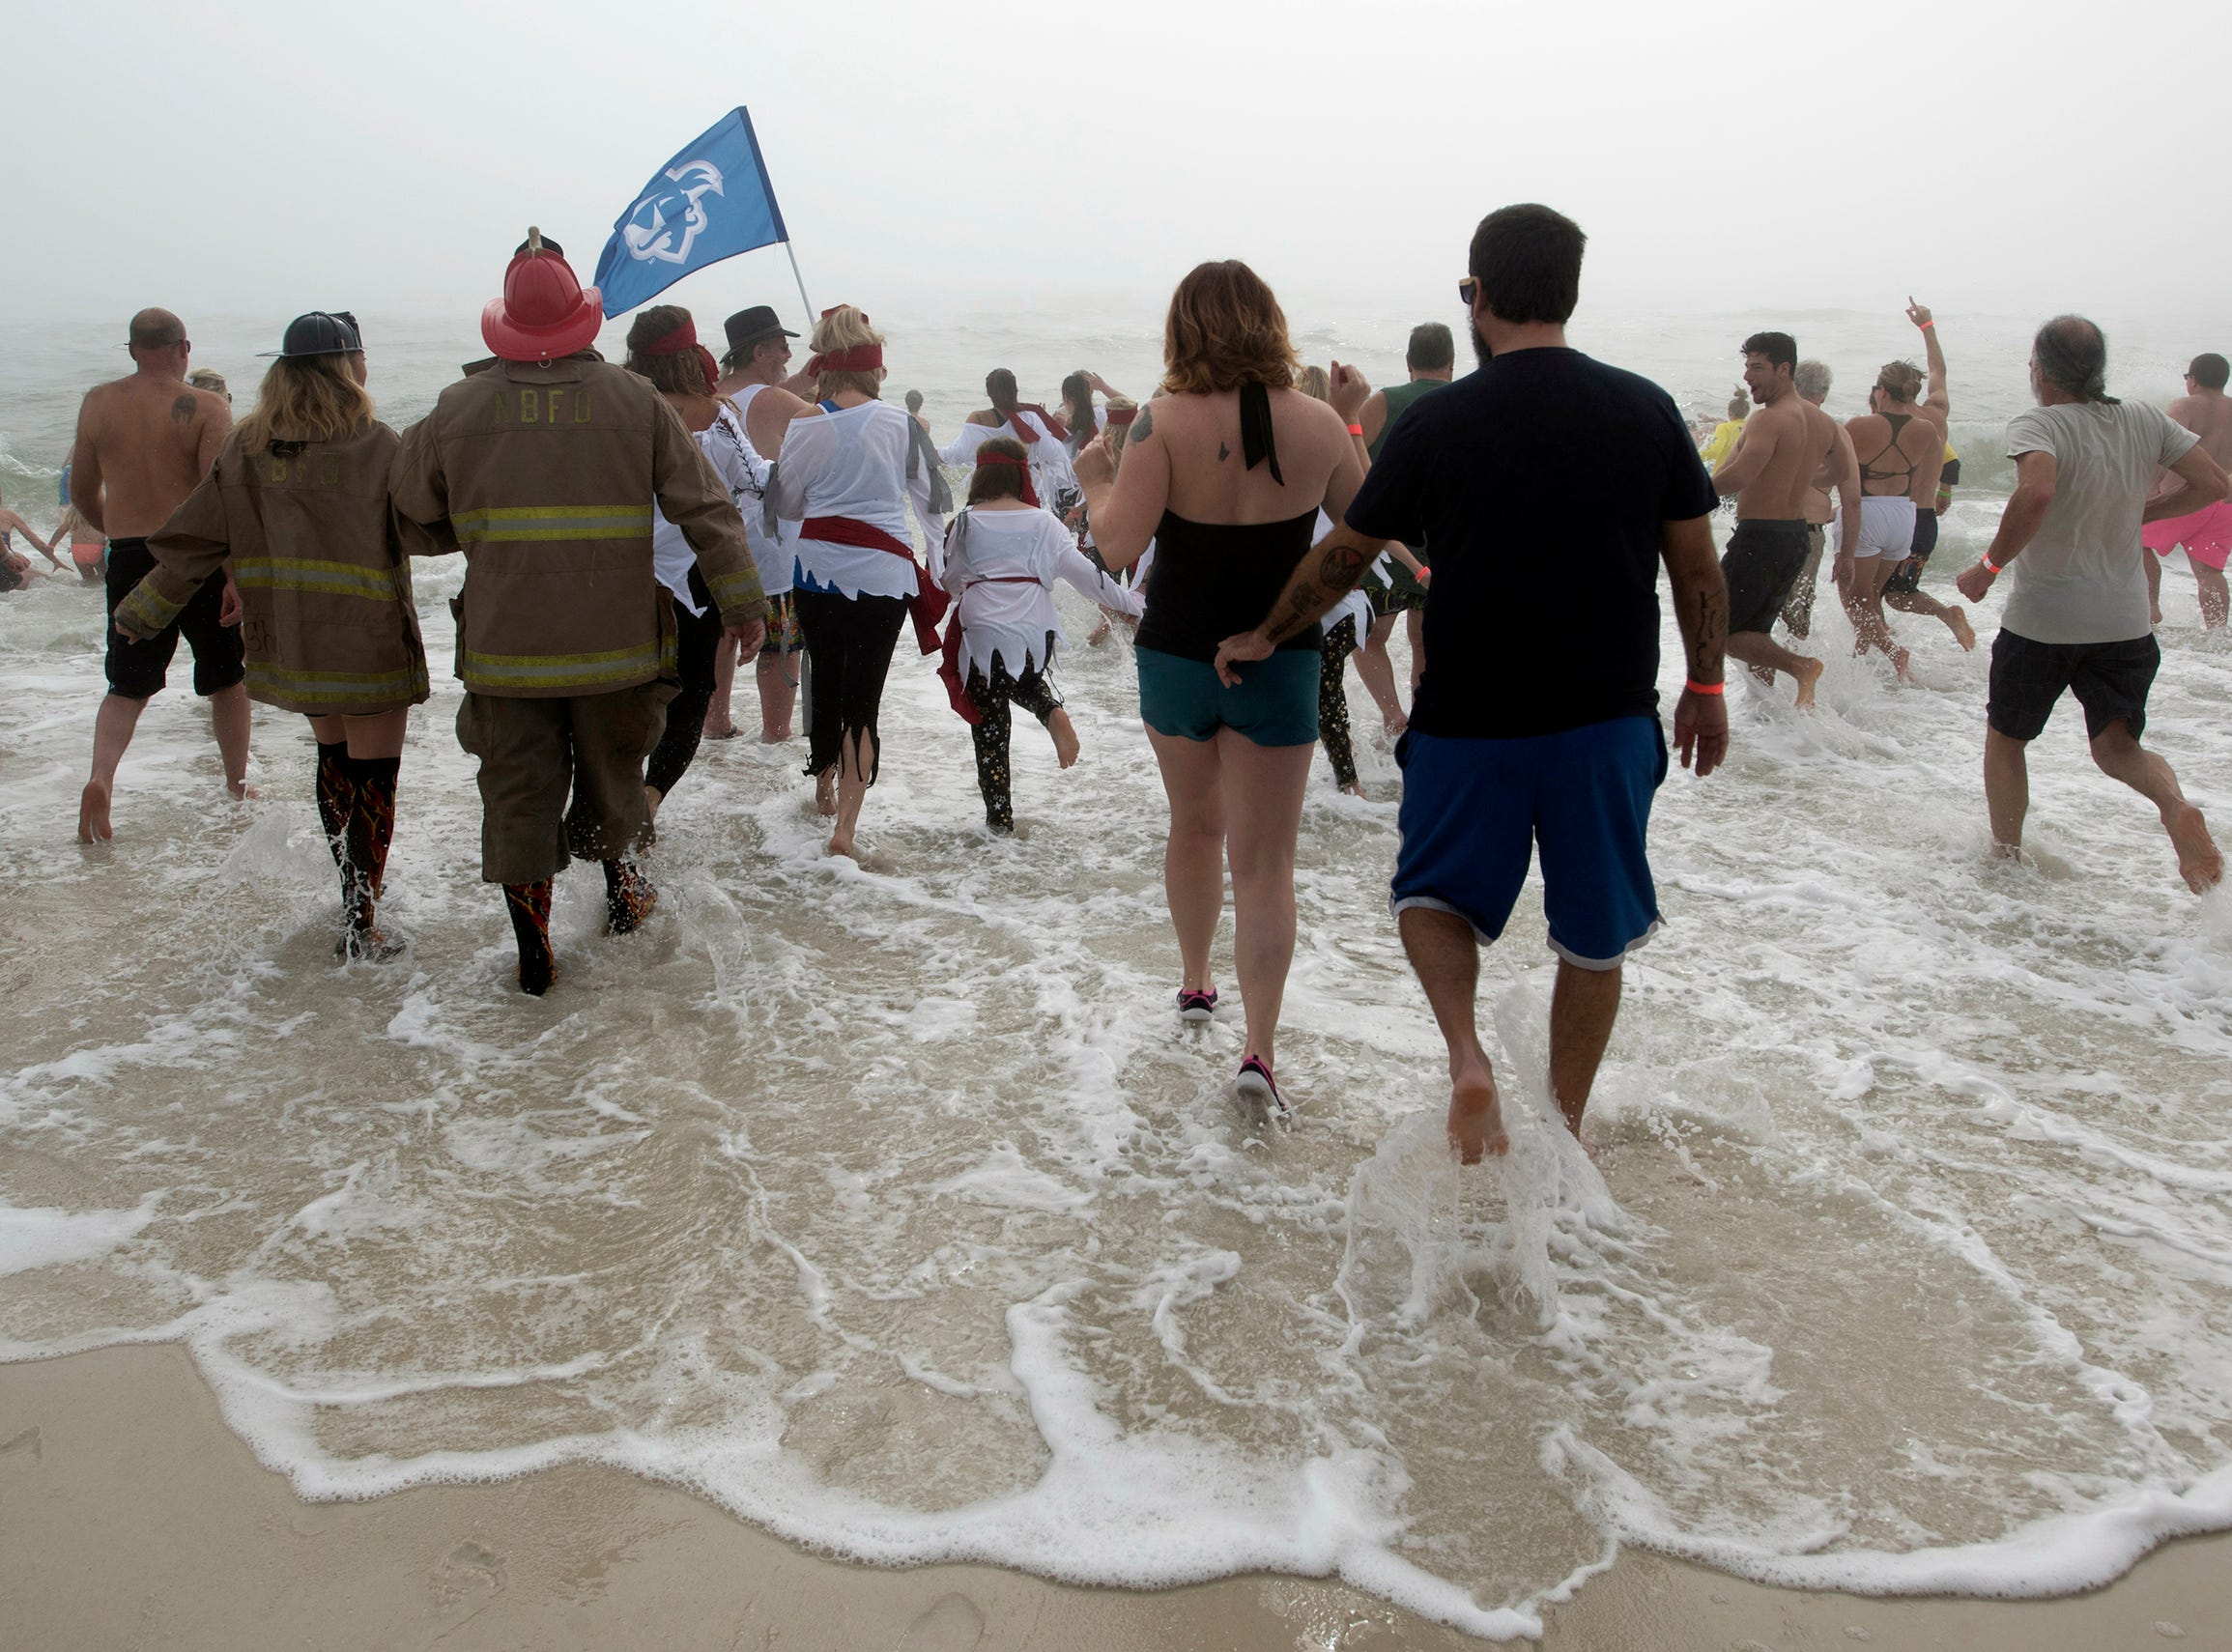 """Pirates and pirate wanna-a-bees prepare to take a dip in the cold waters of the Gulf of Mexico during the 2nd annual Pirate Plunge on Tuesday, Jan.1, 2019. The New Year's Day activity put on by the Pirates of the Panhandle Social Club drew an estimated crowd over 450 people, said organizer, """"Jersey"""" Jerry Foster."""